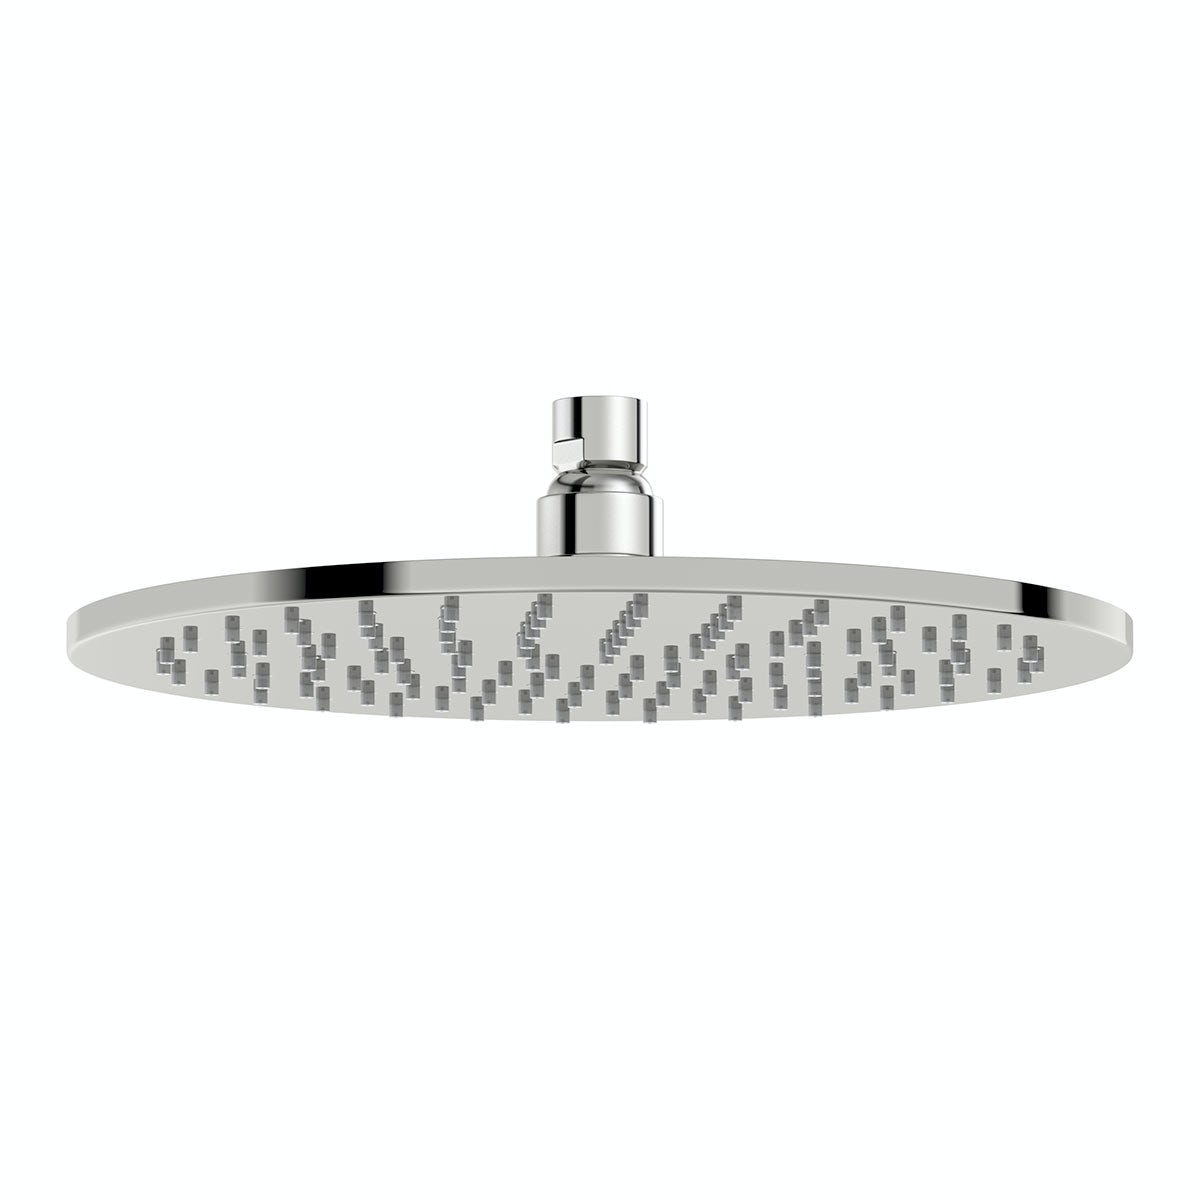 Mode Aria round shower head 250mm